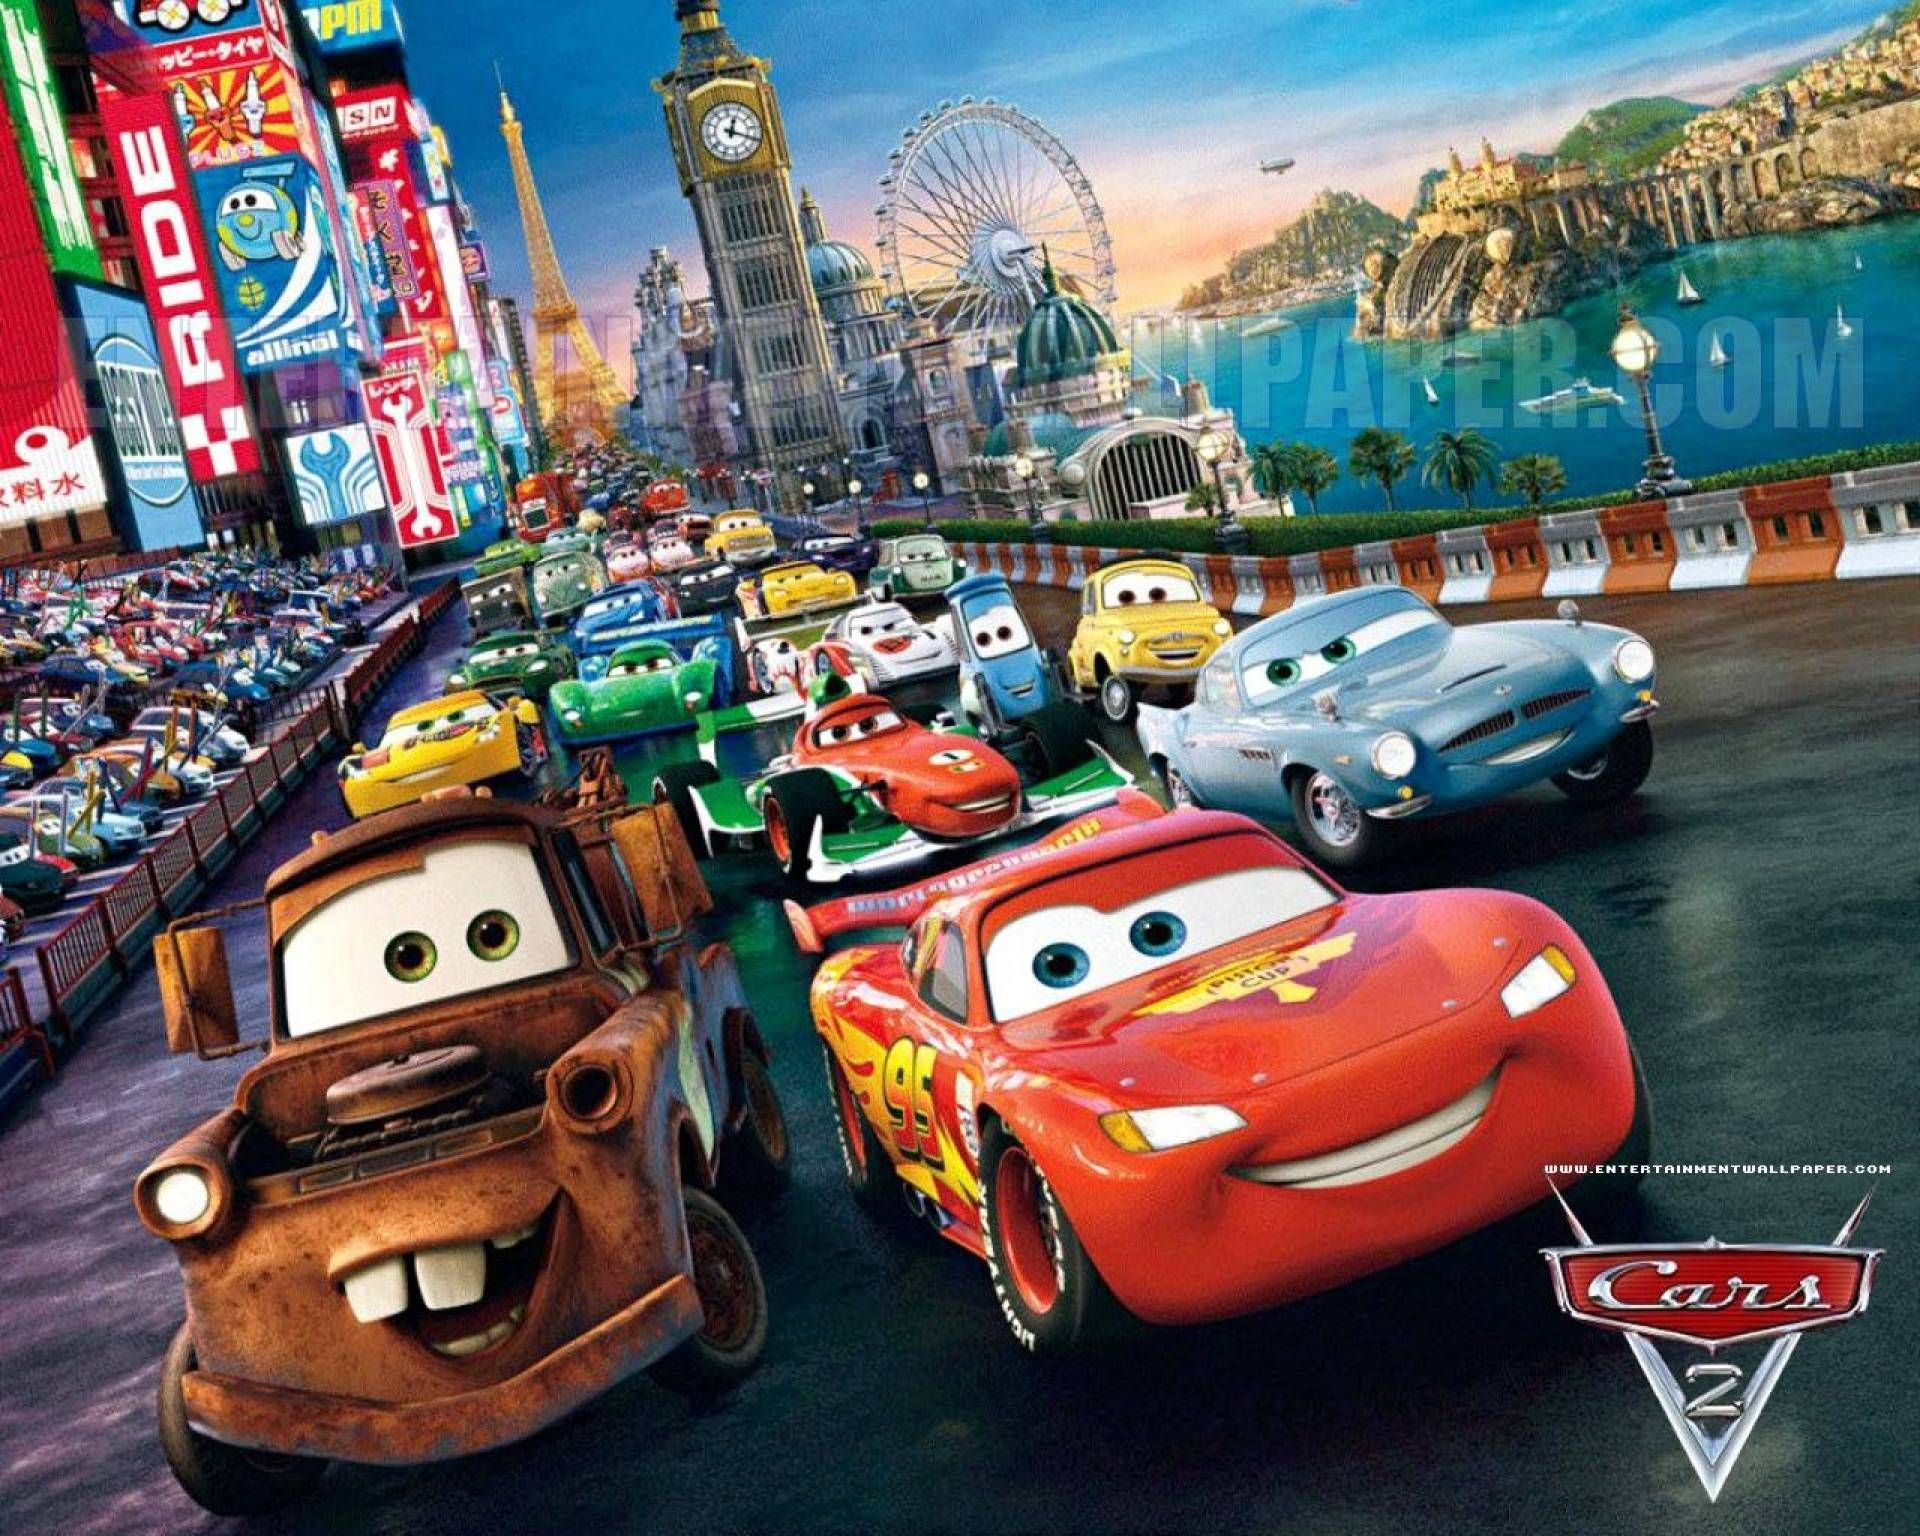 Lightning Mcqueen Movie Wallpaper Best Cool Wallpaper Hd Download Disney Cars Wallpaper Disney Cars Car Wallpapers